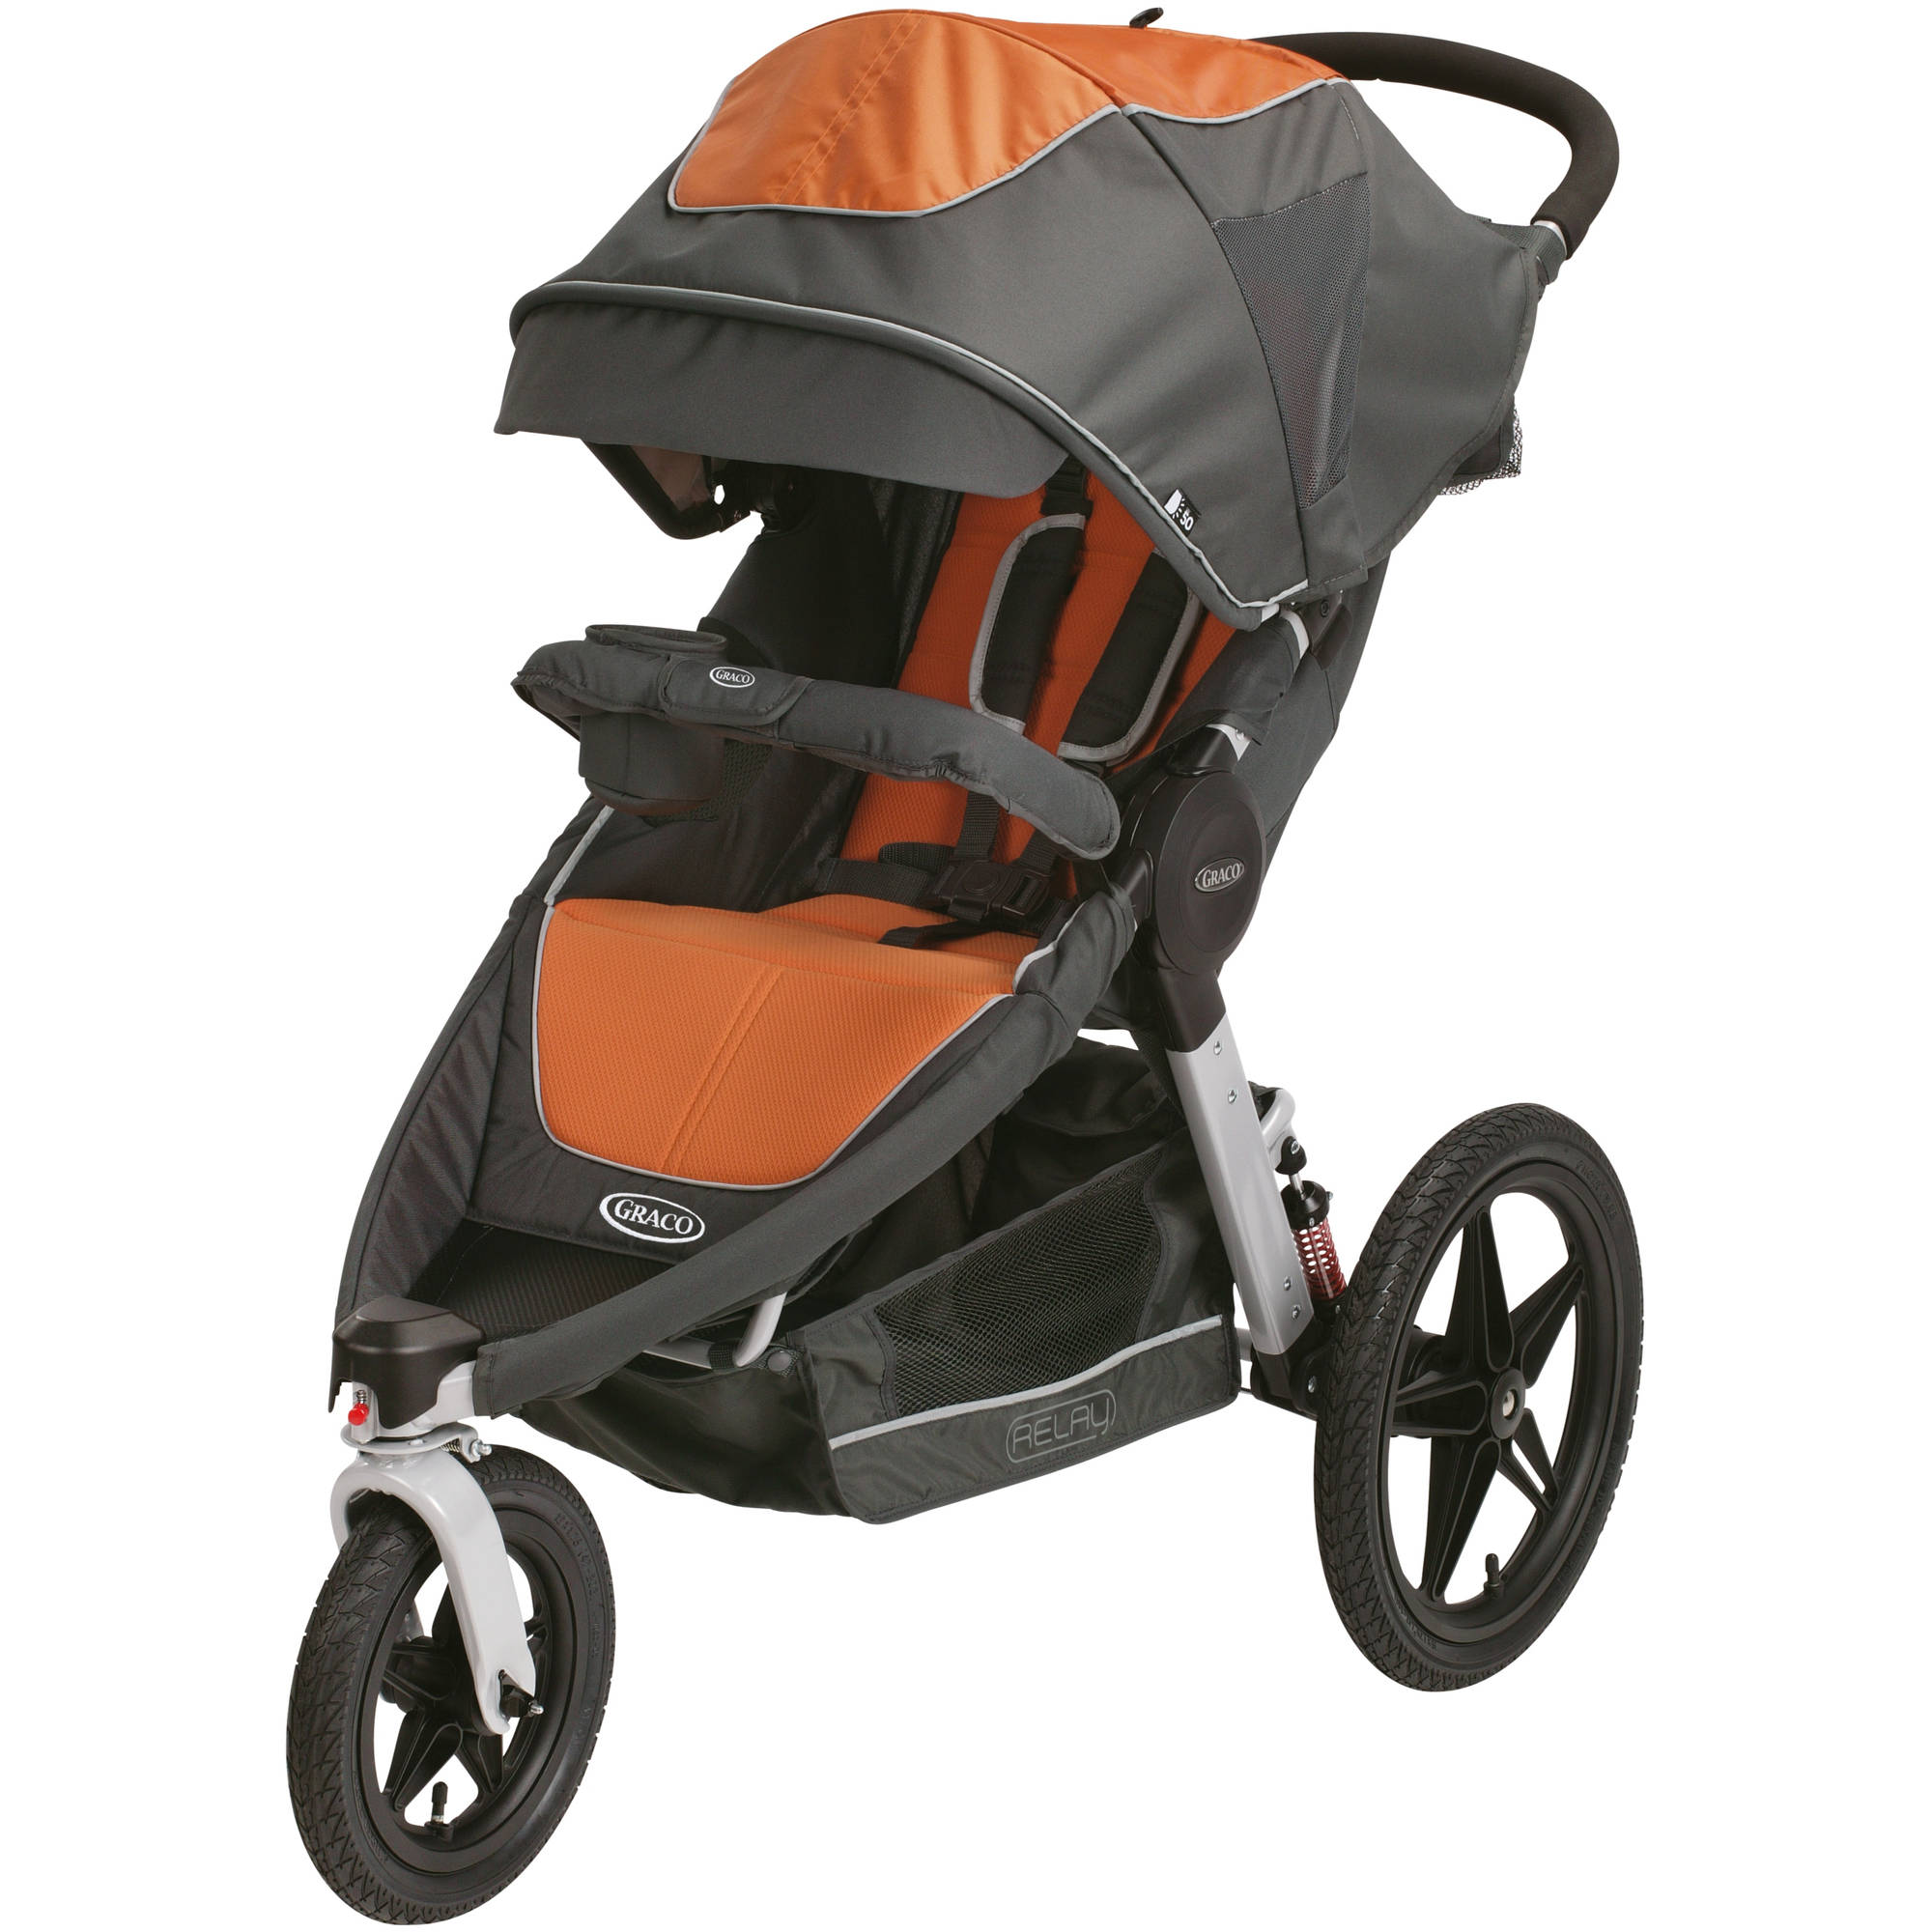 Overstock Graco Relay Click Connect Jogging Stroller